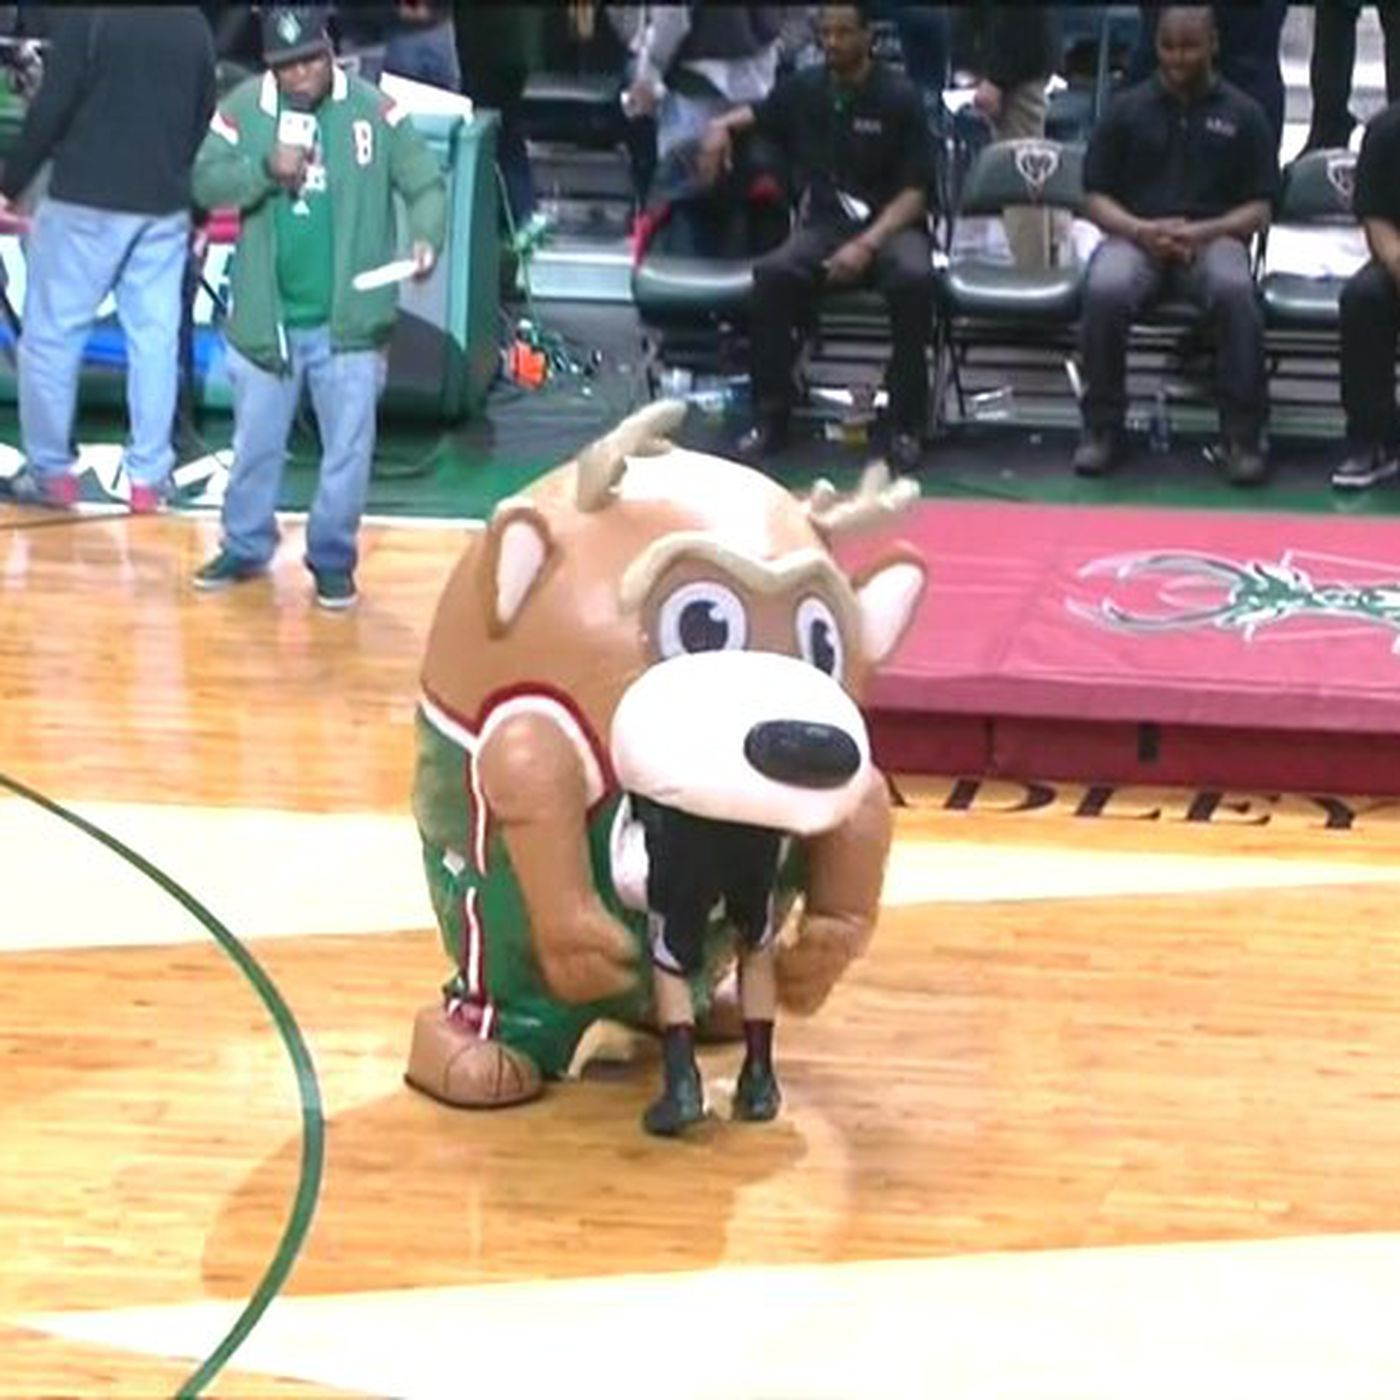 Man Eating Inflatable Bucks Mascot On The Loose In Milwaukee